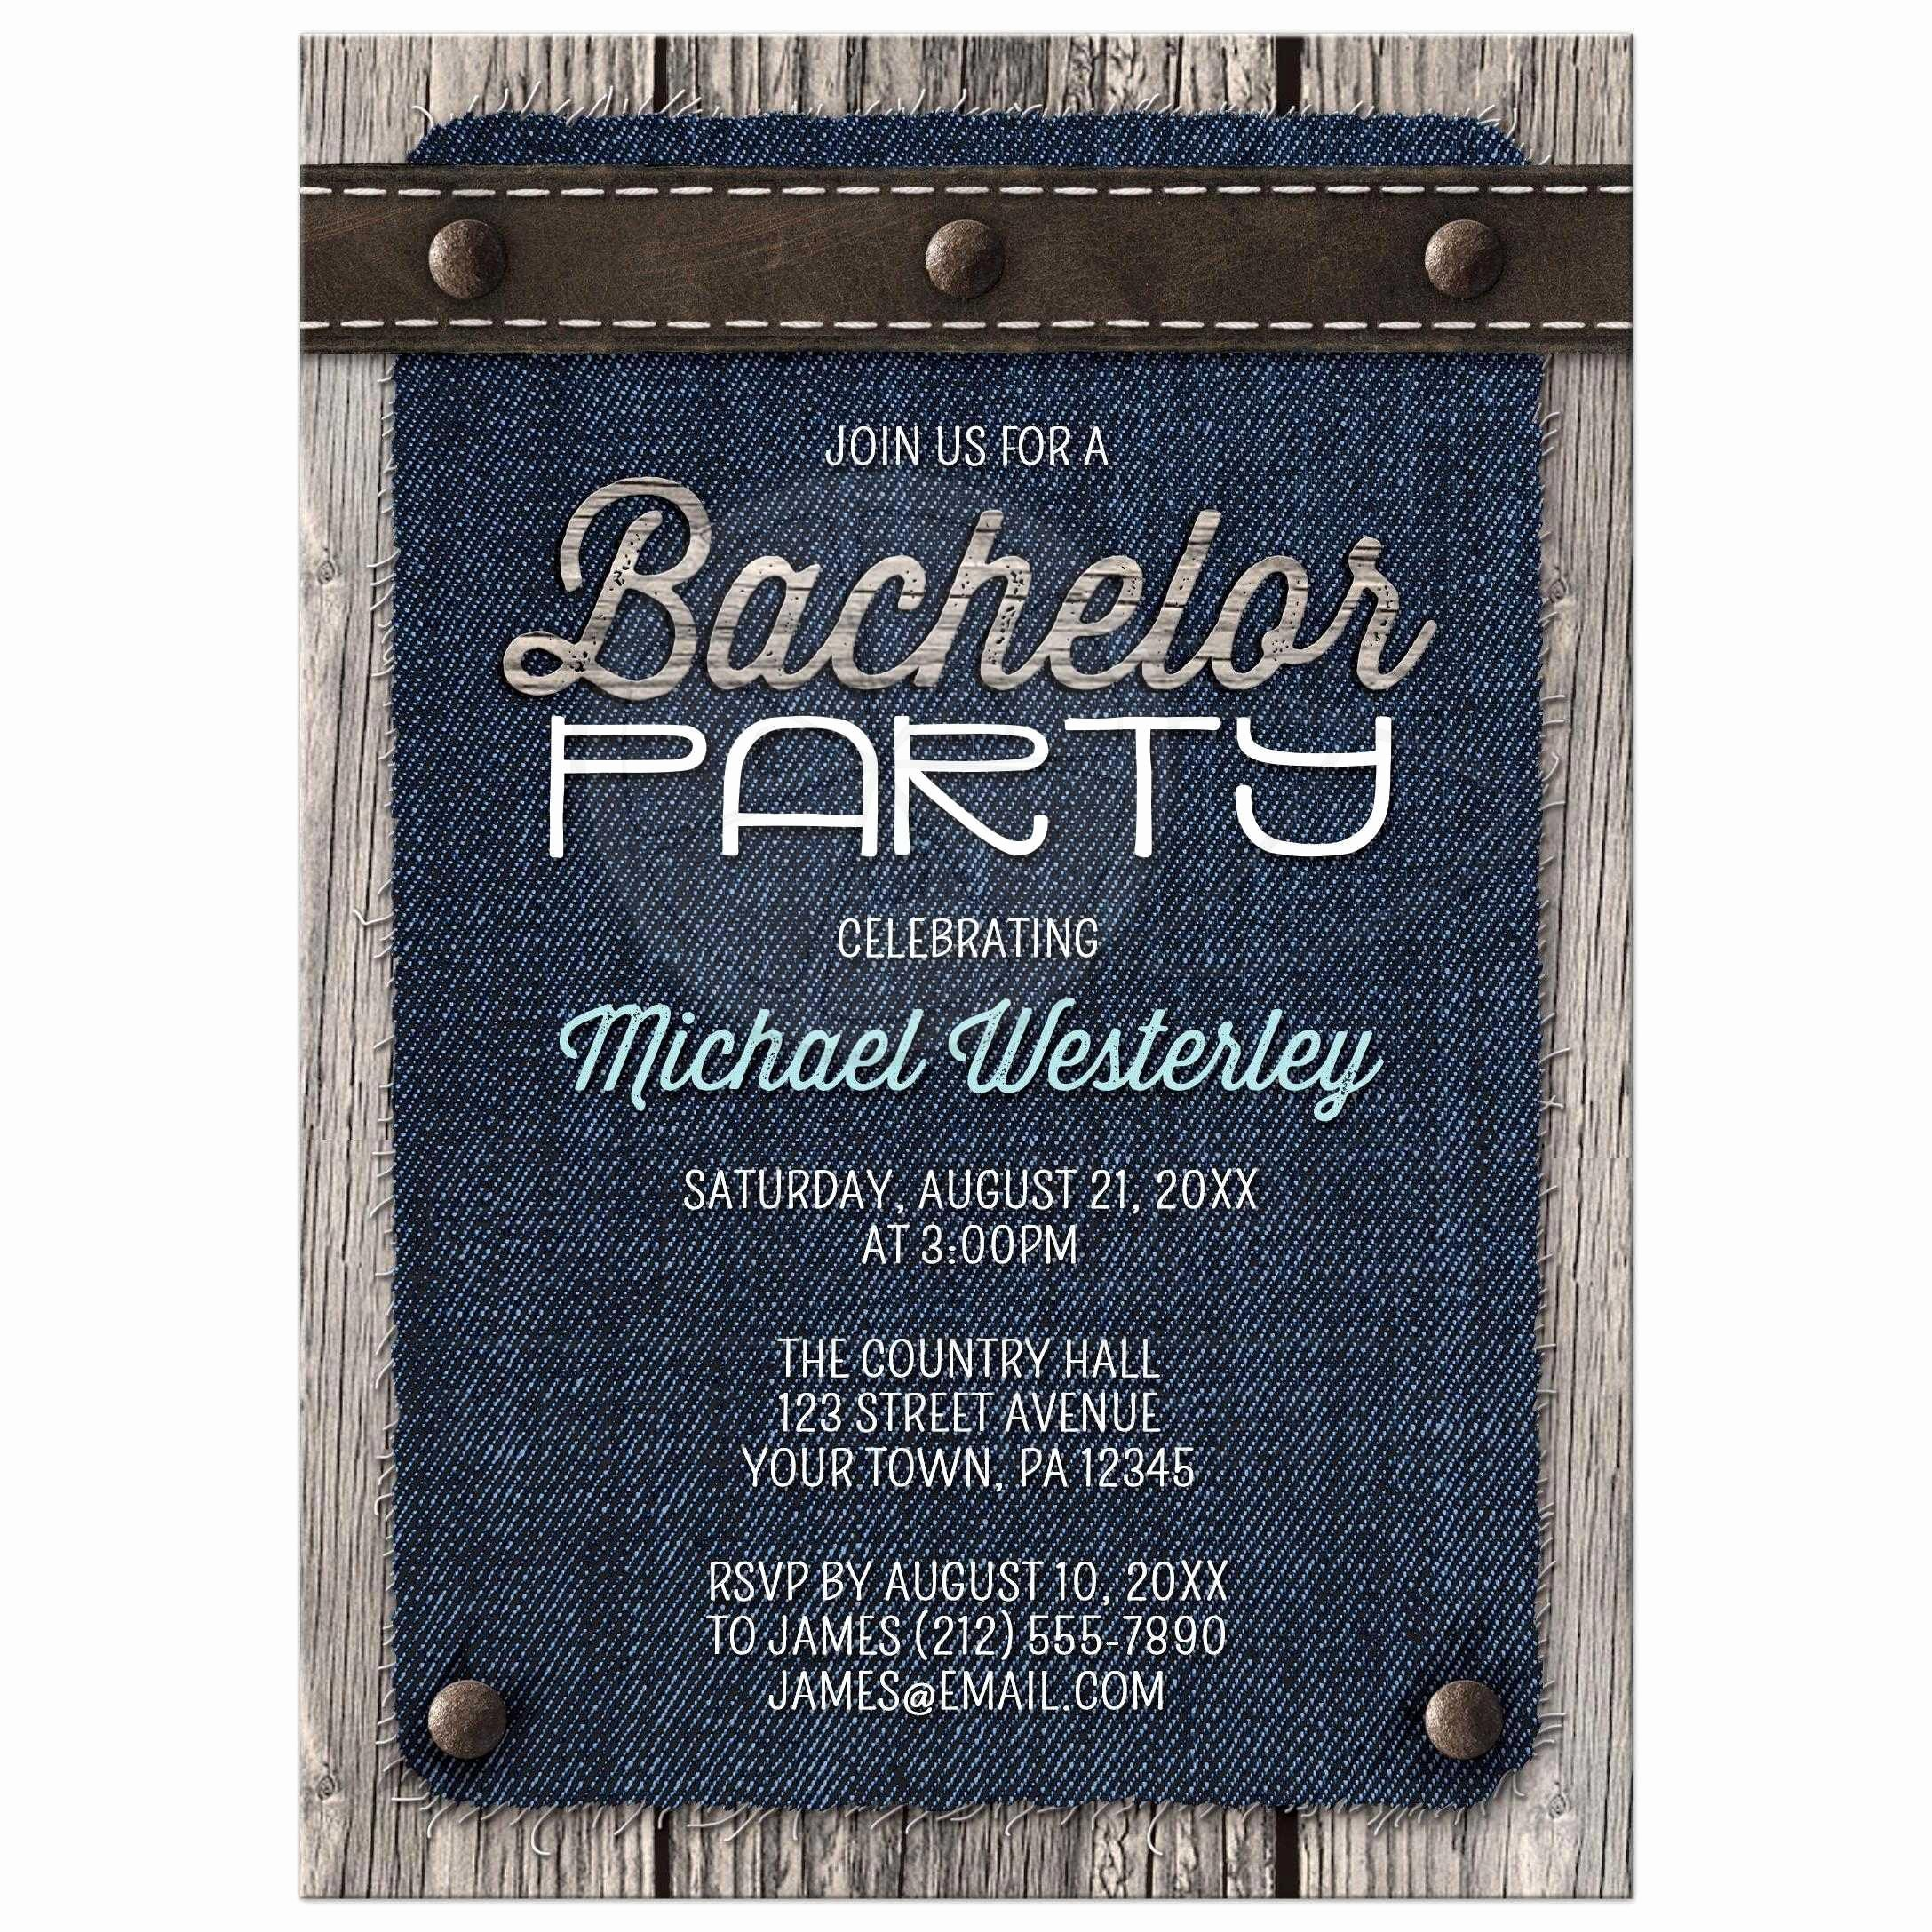 Bachelor Party Invite Template New Bachelor Party Invitations